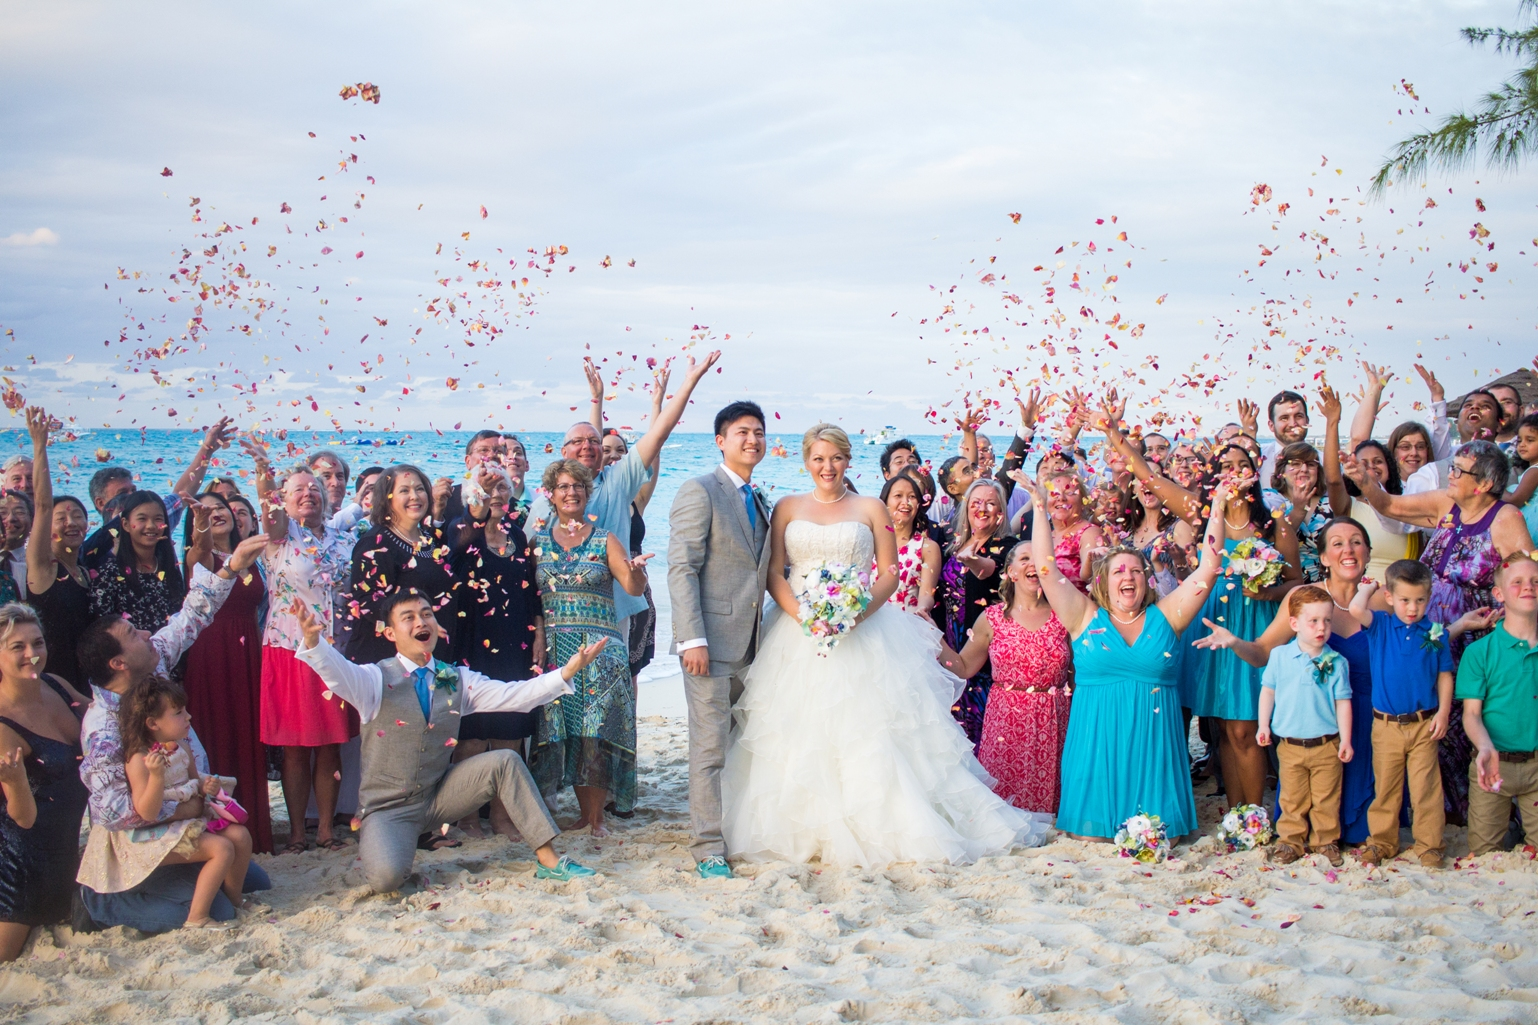 wedding-rose-petal-toss.-zak-and-claire-married-november-12.-2016-at-beaches-resort-in-the-turks-and-caicos-with-flyboy-naturals-rose-petals.-small-file.2.444-clairezak-9425.jpg